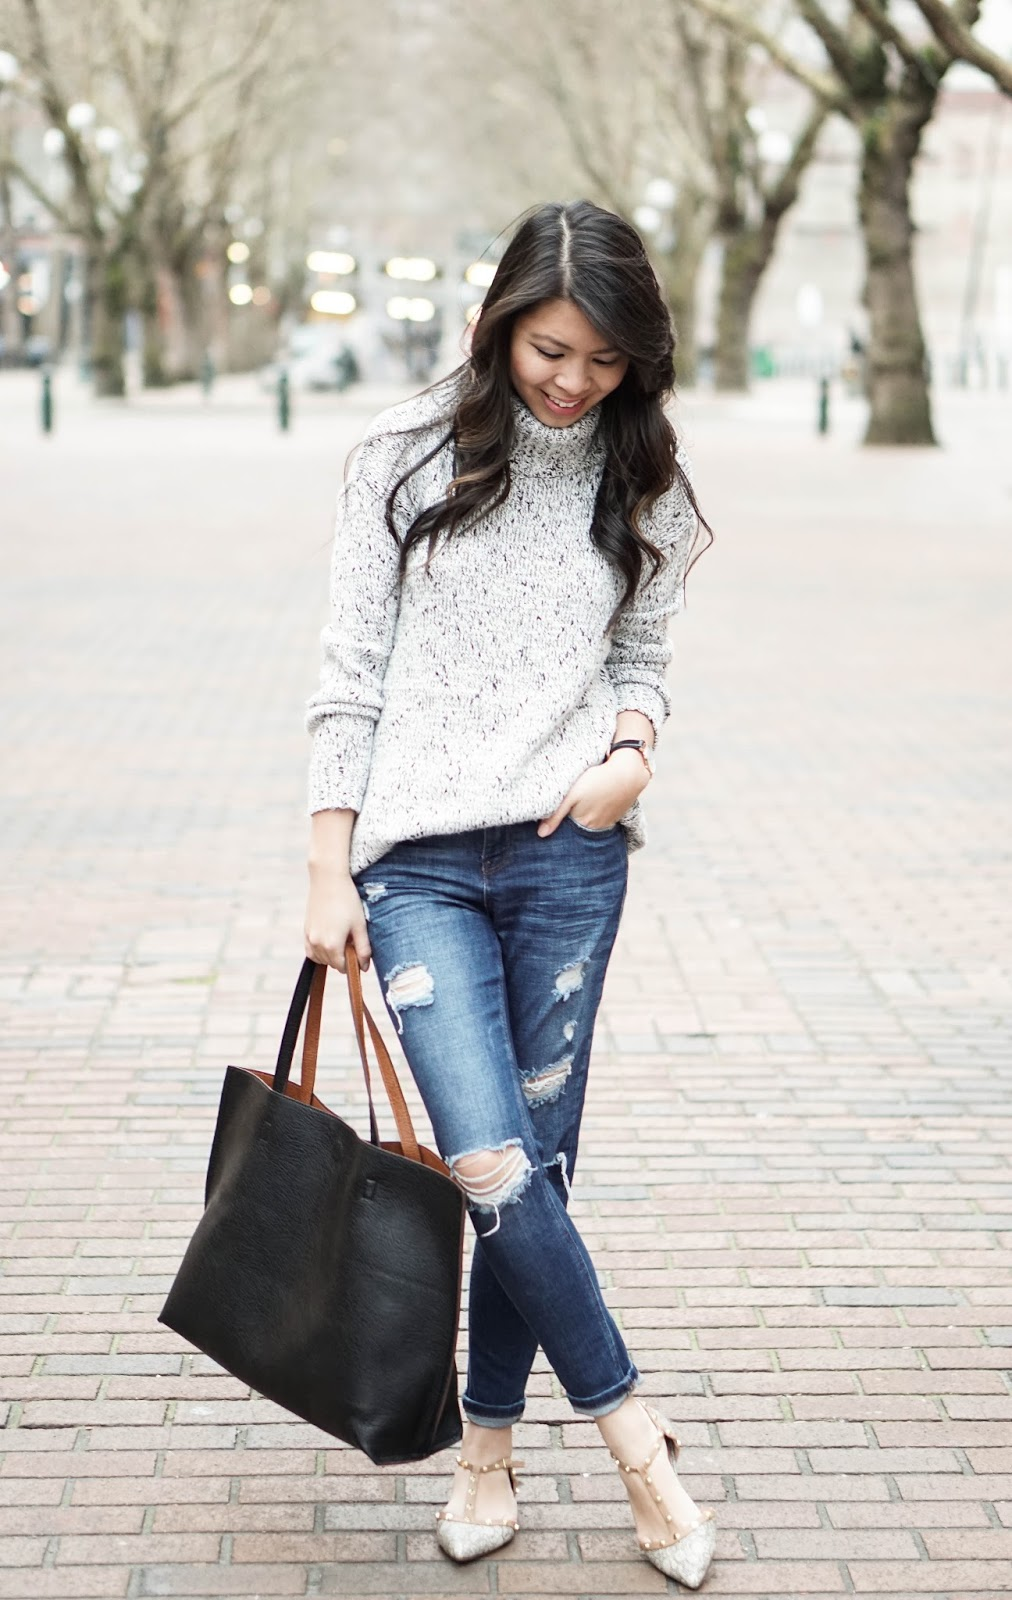 Brunch Attire Knit Sweater Ripped Jeans and Studded Flats | Just A Tina Bit